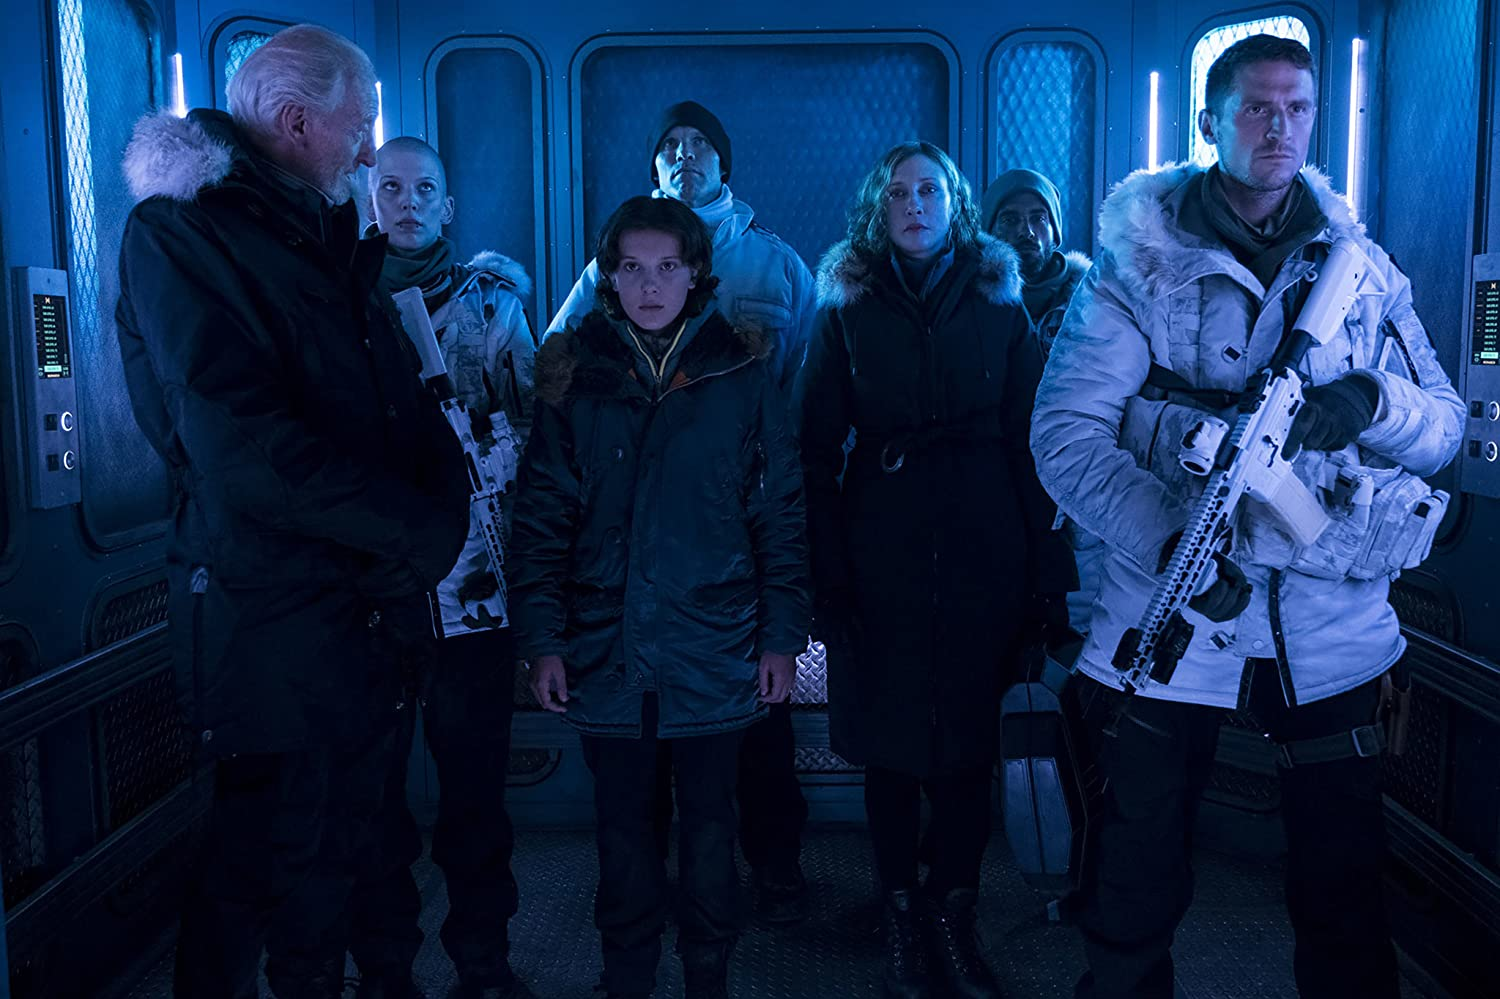 Charles Dance, Vera Farmiga, Zac Zedalis, Jonathan Howard, Joshua Leary, Millie Bobby Brown, and Tracie Garrison in Godzilla: King of the Monsters (2019)